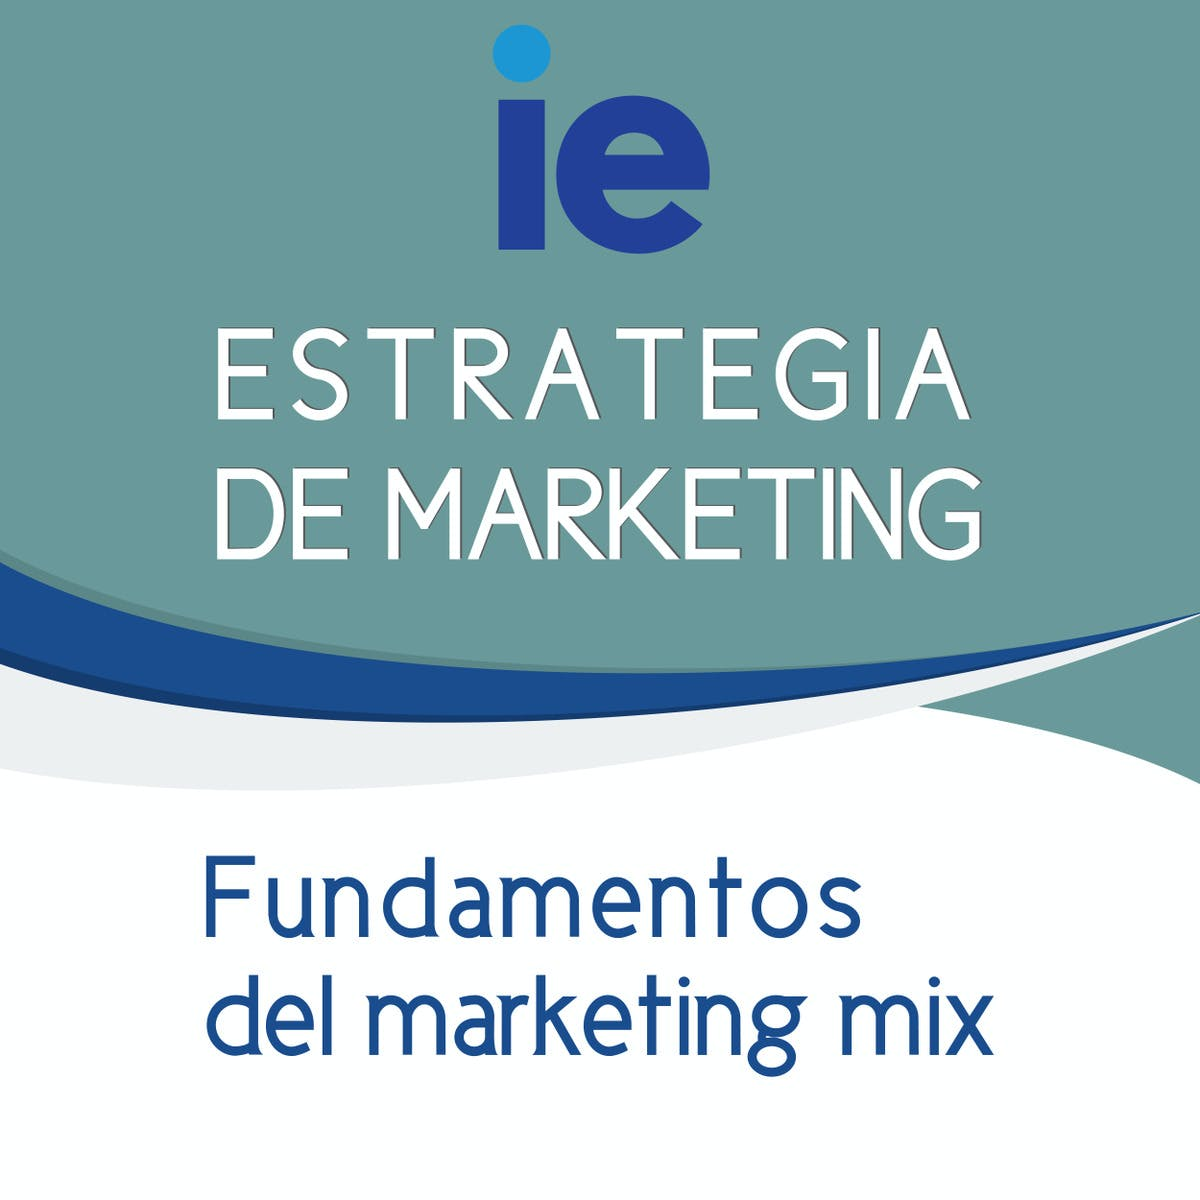 Fundamentos del marketing mix